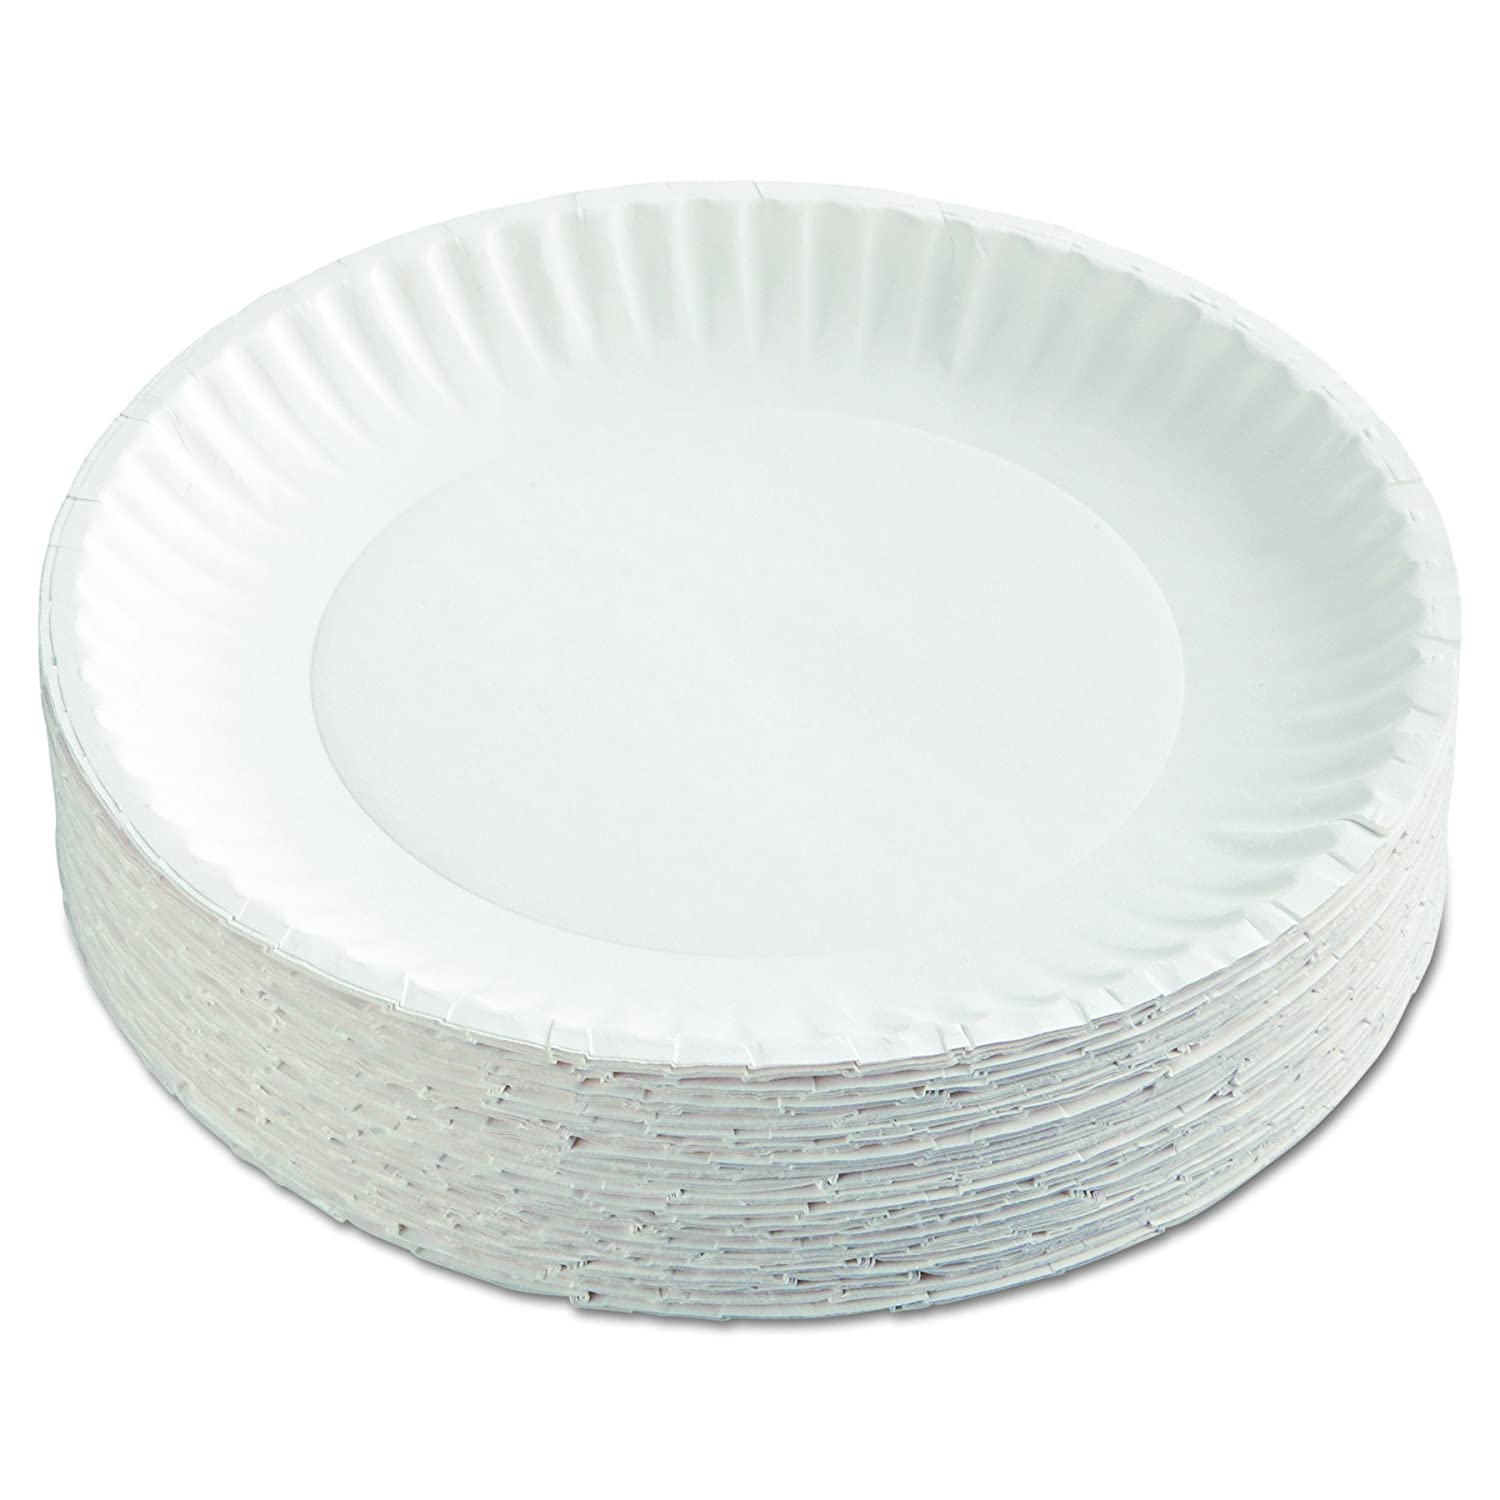 AJM Packaging Corporation PP9GRAWH Paper Plates 9  Diameter White 12 Packs of 100 (Case of 1200)  sc 1 st  Amazon.com : motorcycle paper plates - pezcame.com